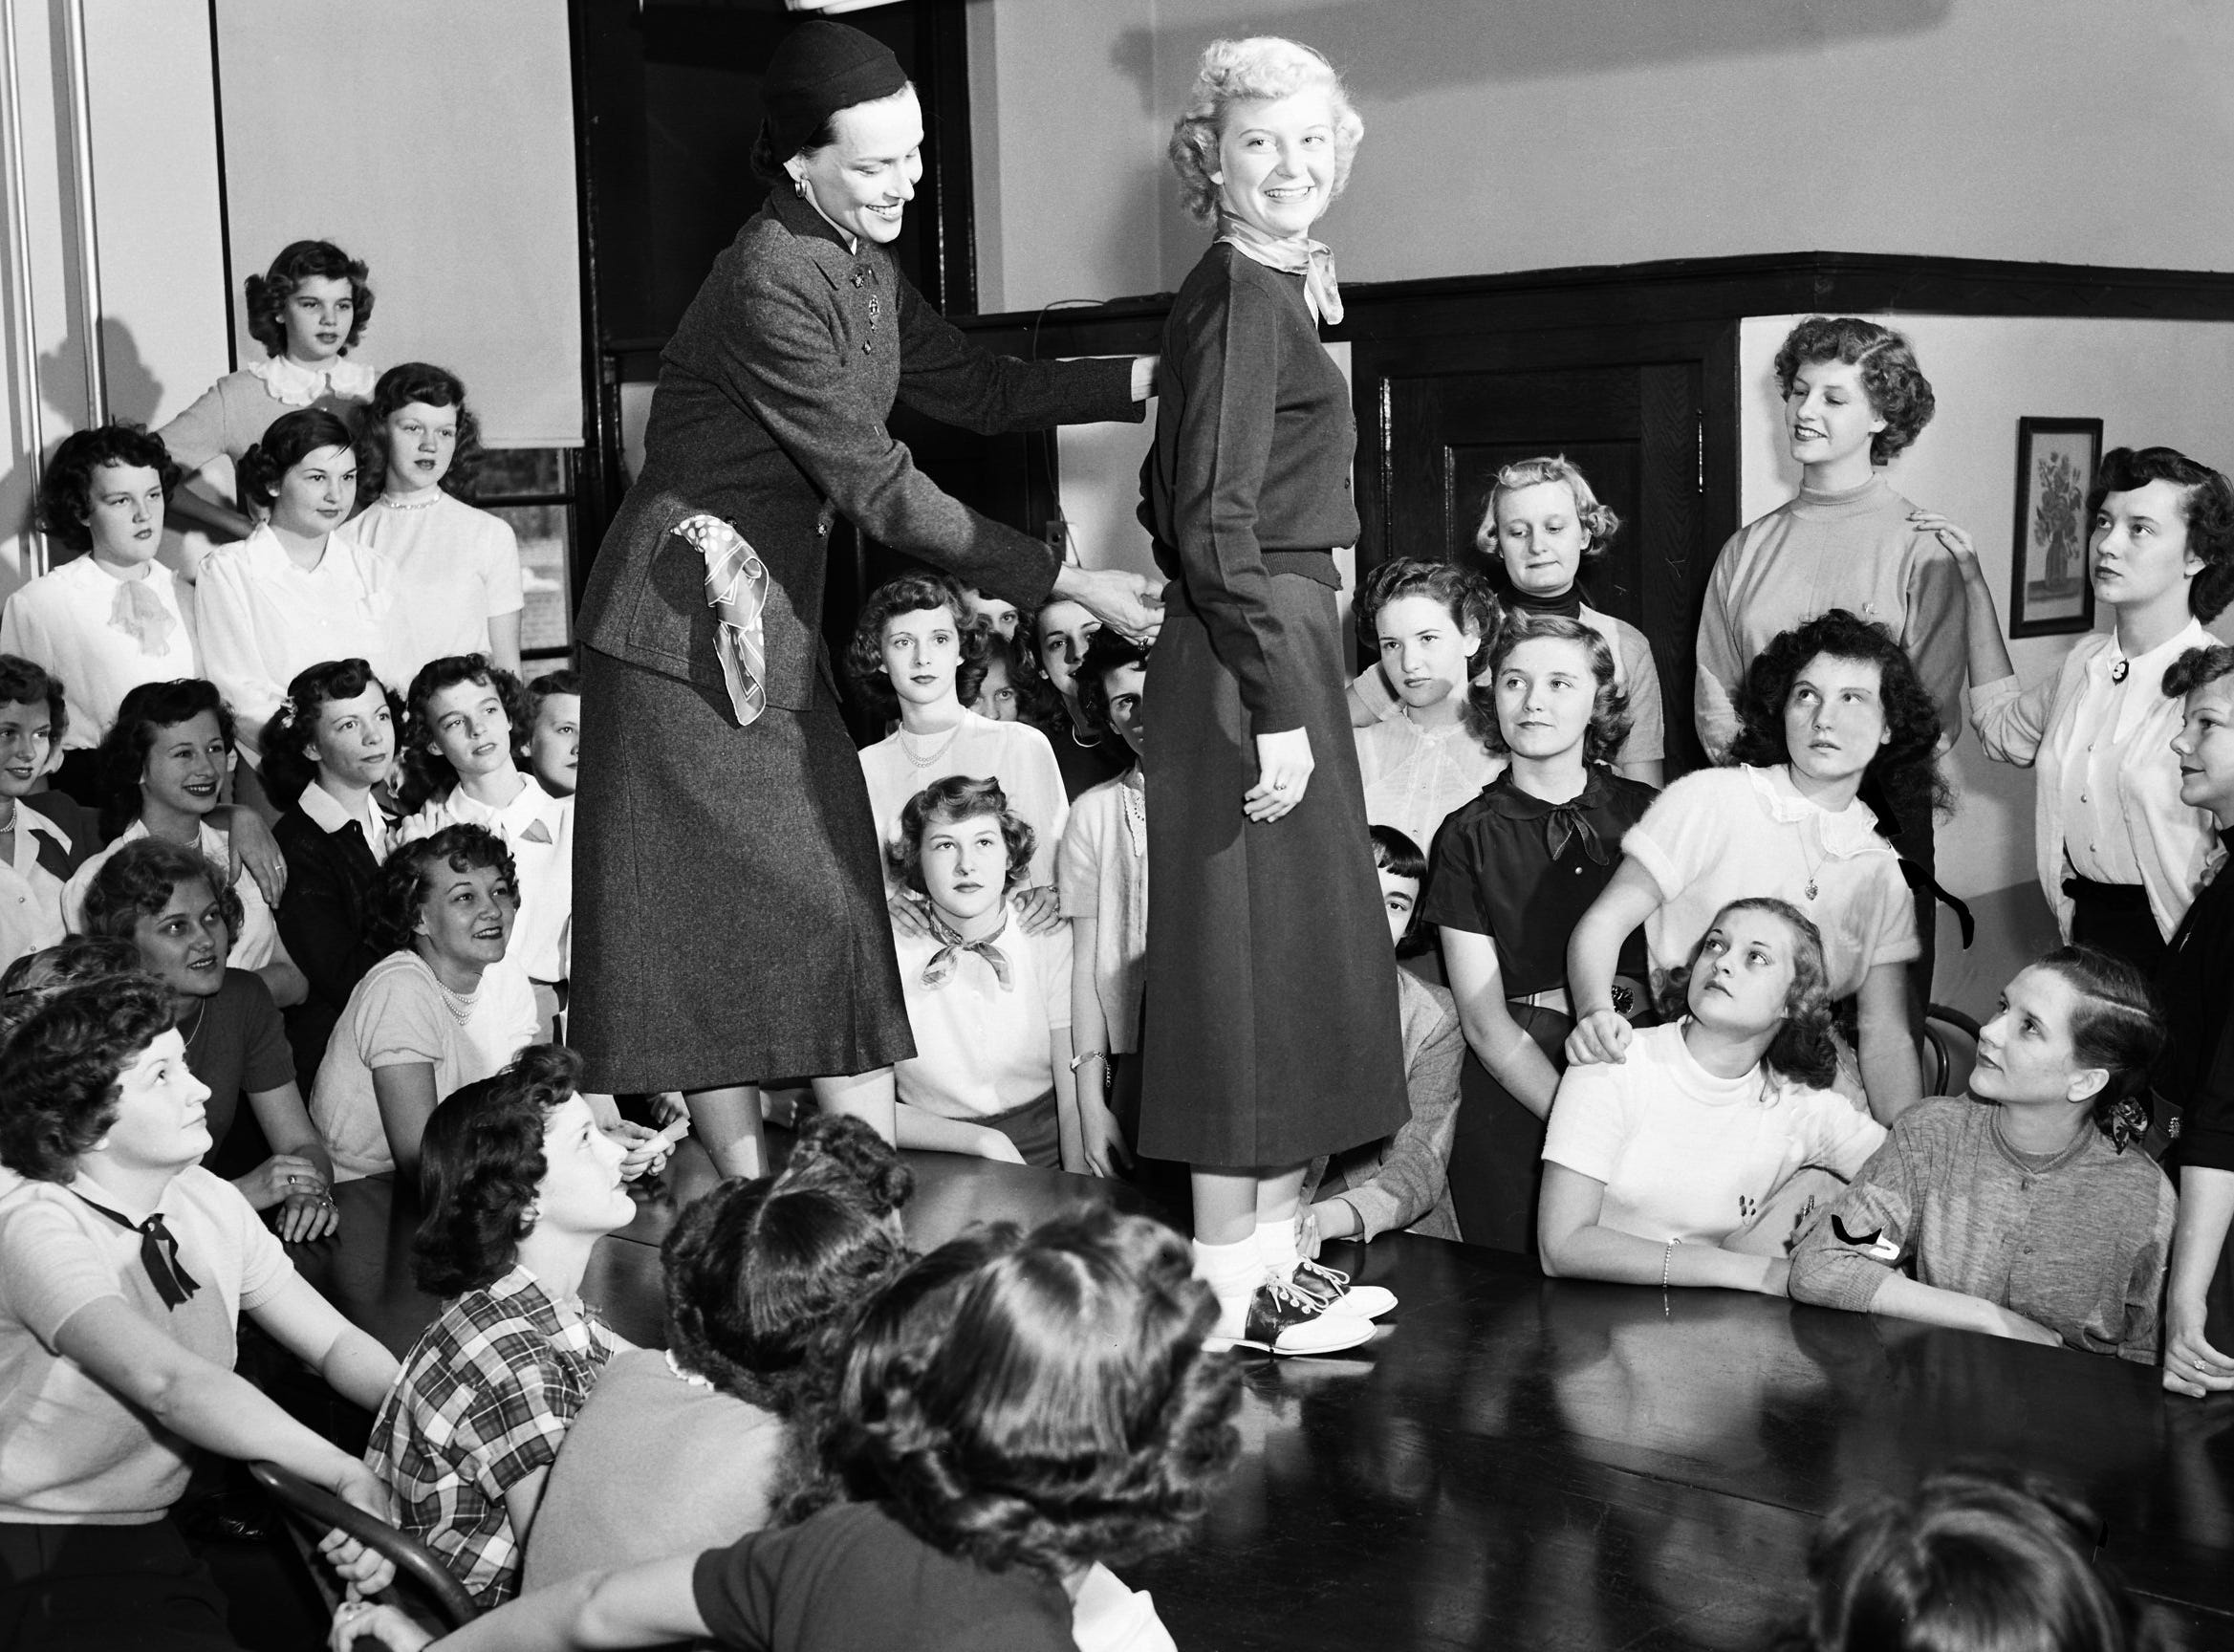 In the Home Economics section of Career Day at Tech High School on 25 Oct 1951, Mrs. Owen Massie of The Looking Glass, a modeling school, shows how the sweater fits Glynda Pruette of 2761 Burns.  Students are allowed to choose sessions on a variety of subjects, ranging from crime prevention to art.  Former graduates of Tech often discuss their field with students.  The Career Day observance is part of the school's vocational guidance program.